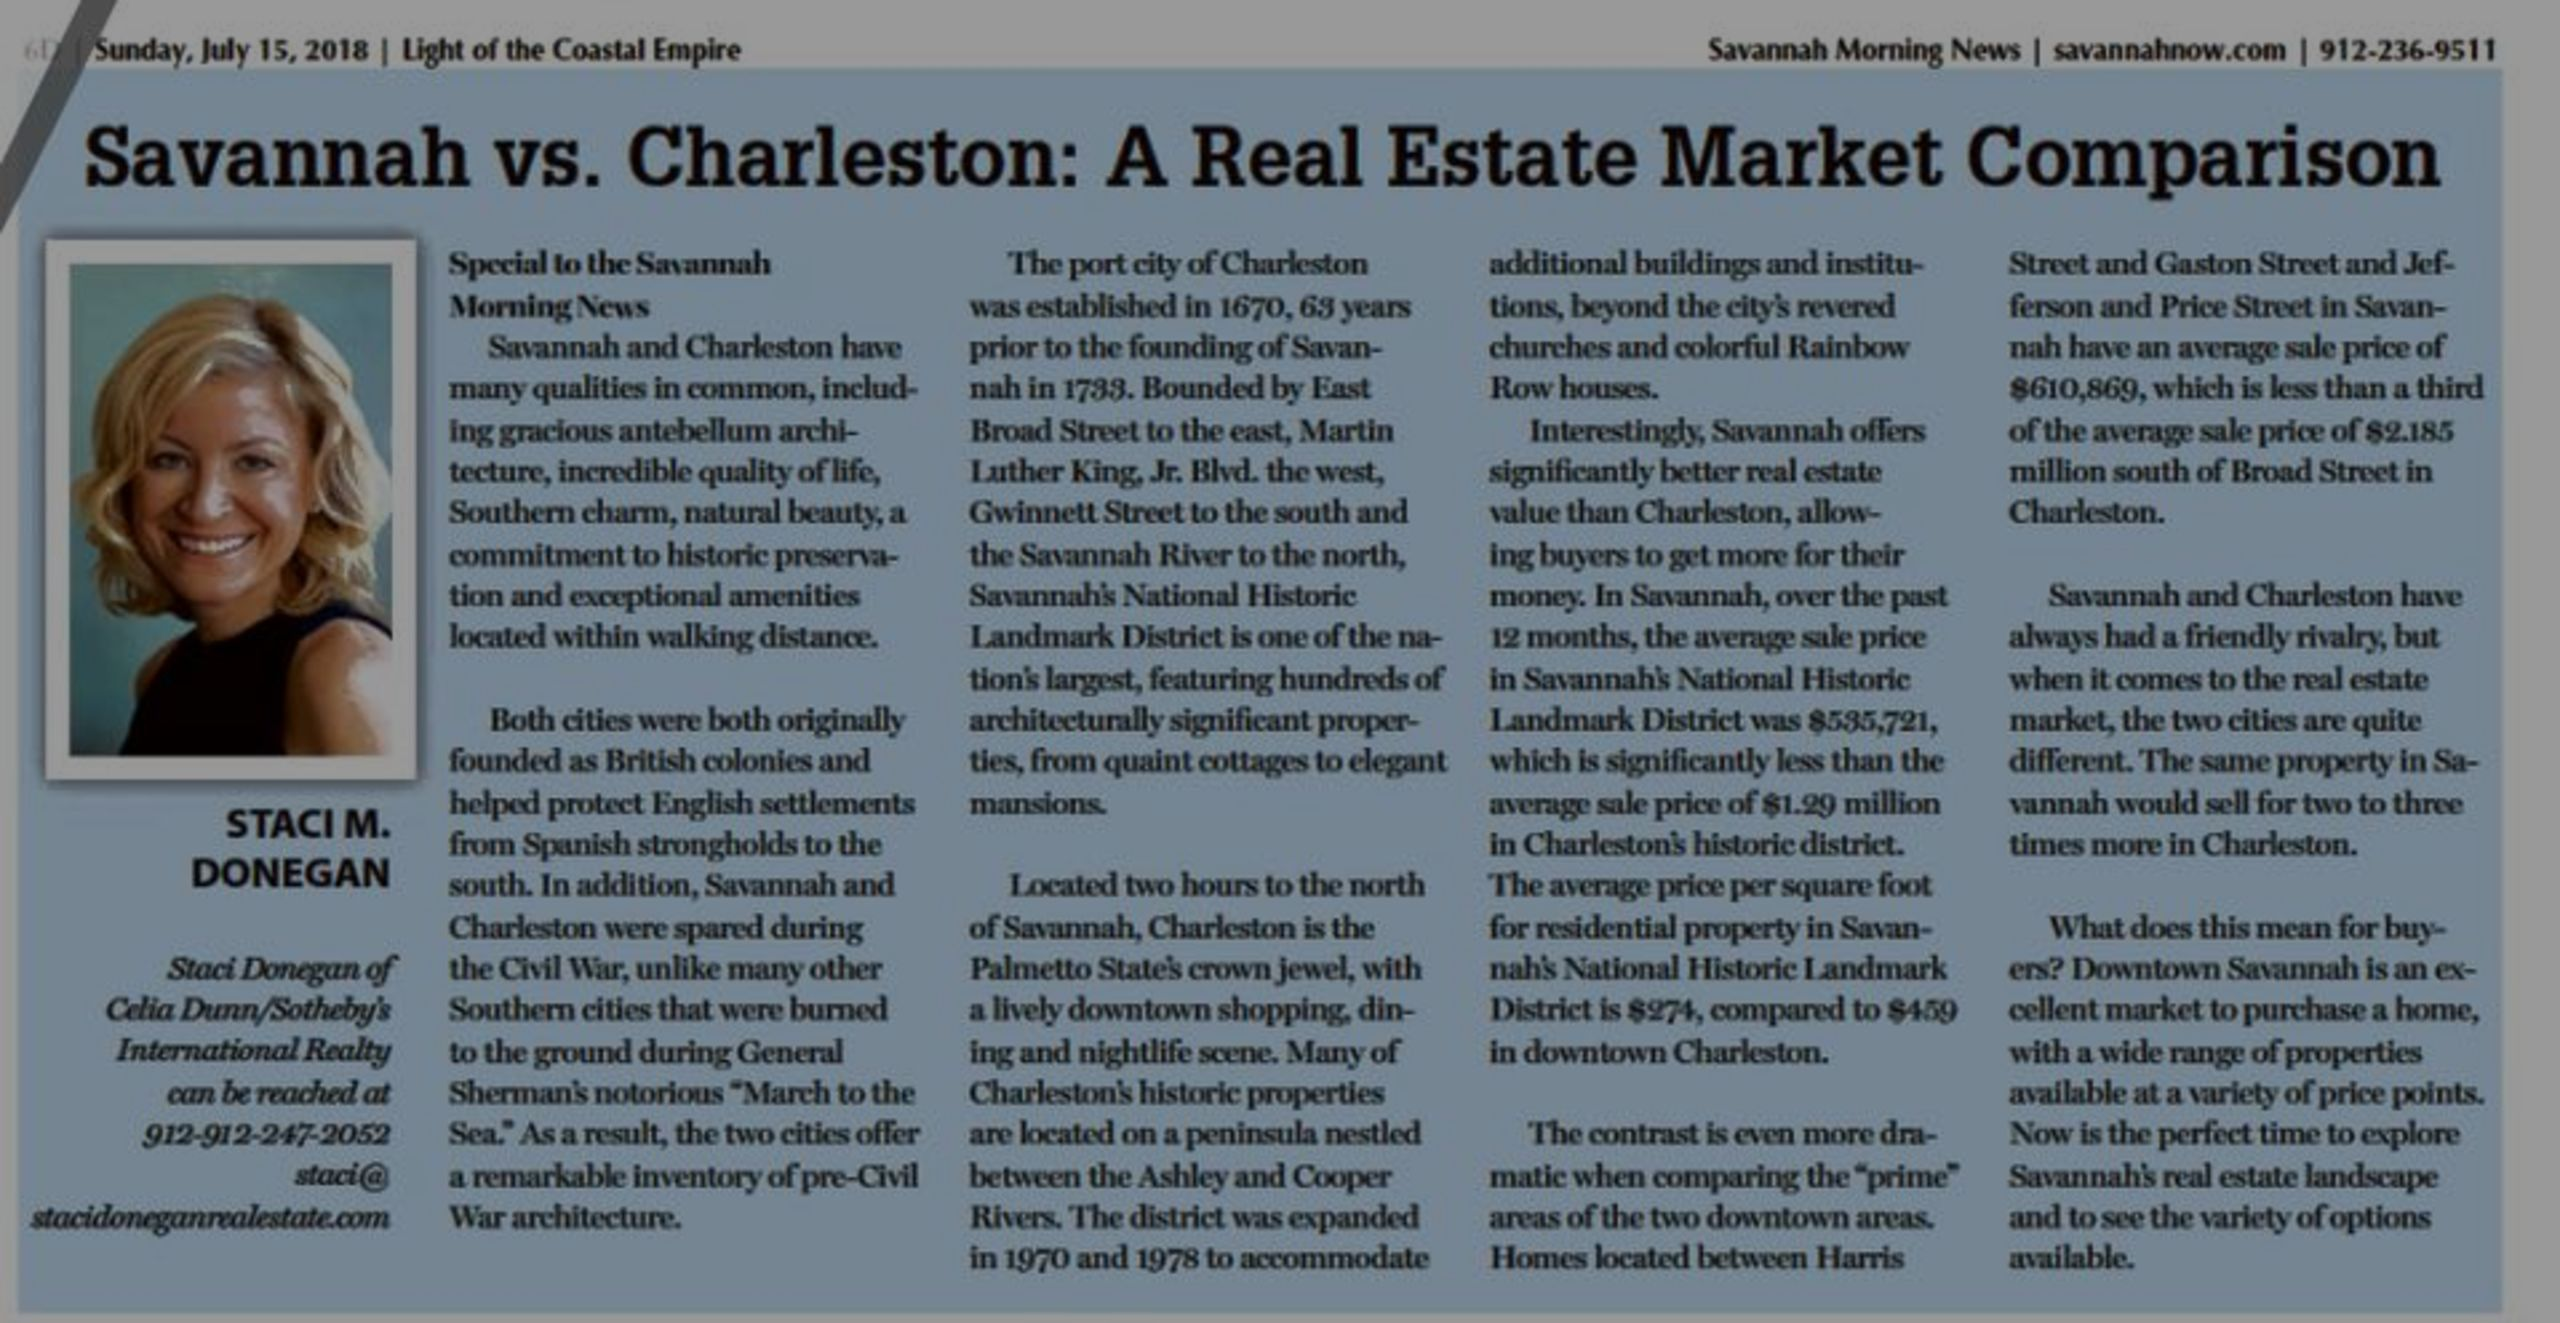 Savannah vs. Charleston: A Real Estate Market Comparison